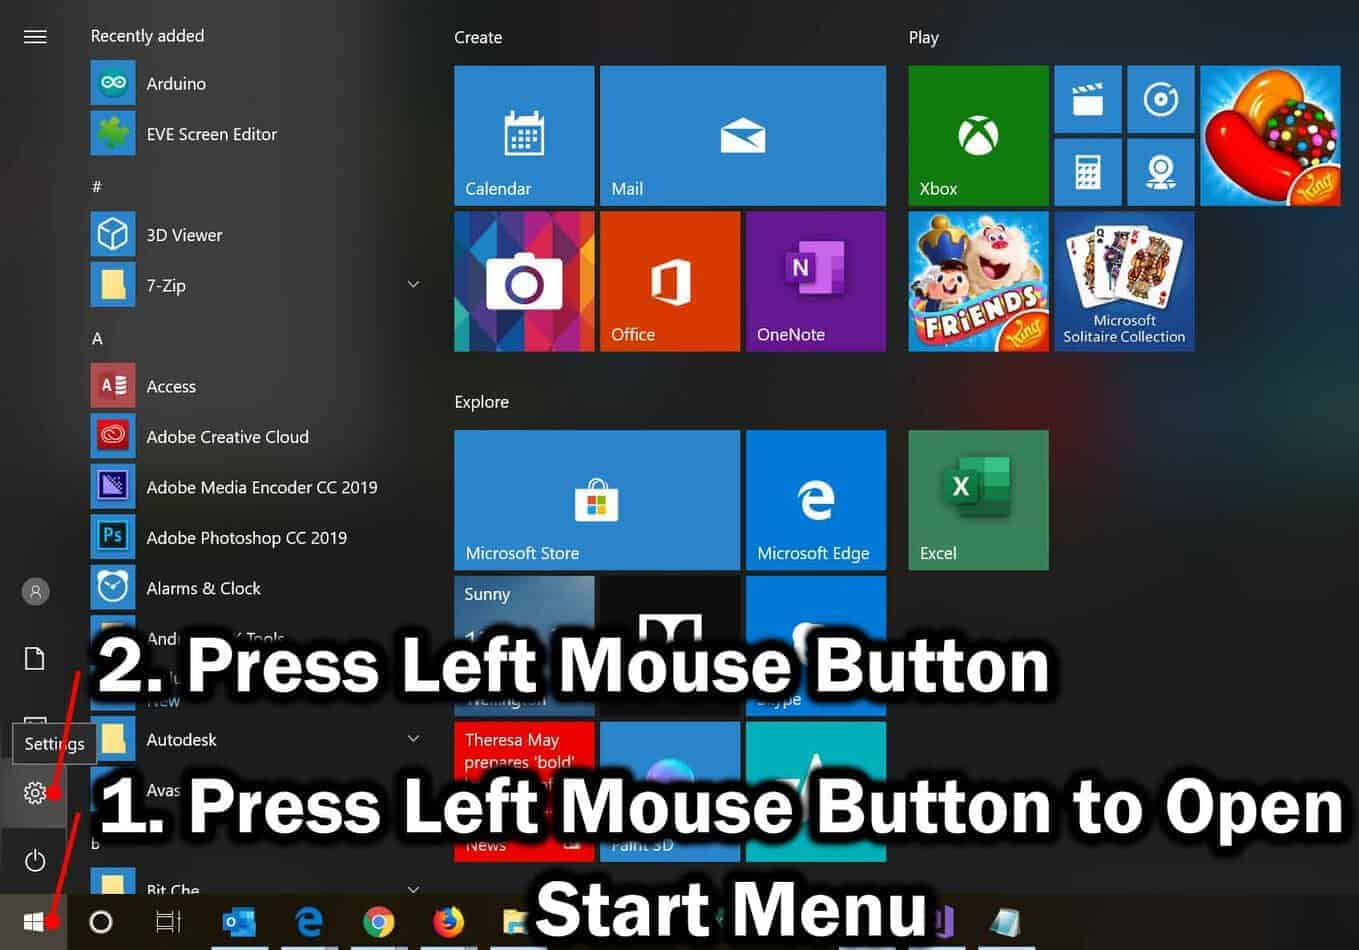 open settings app from start menu